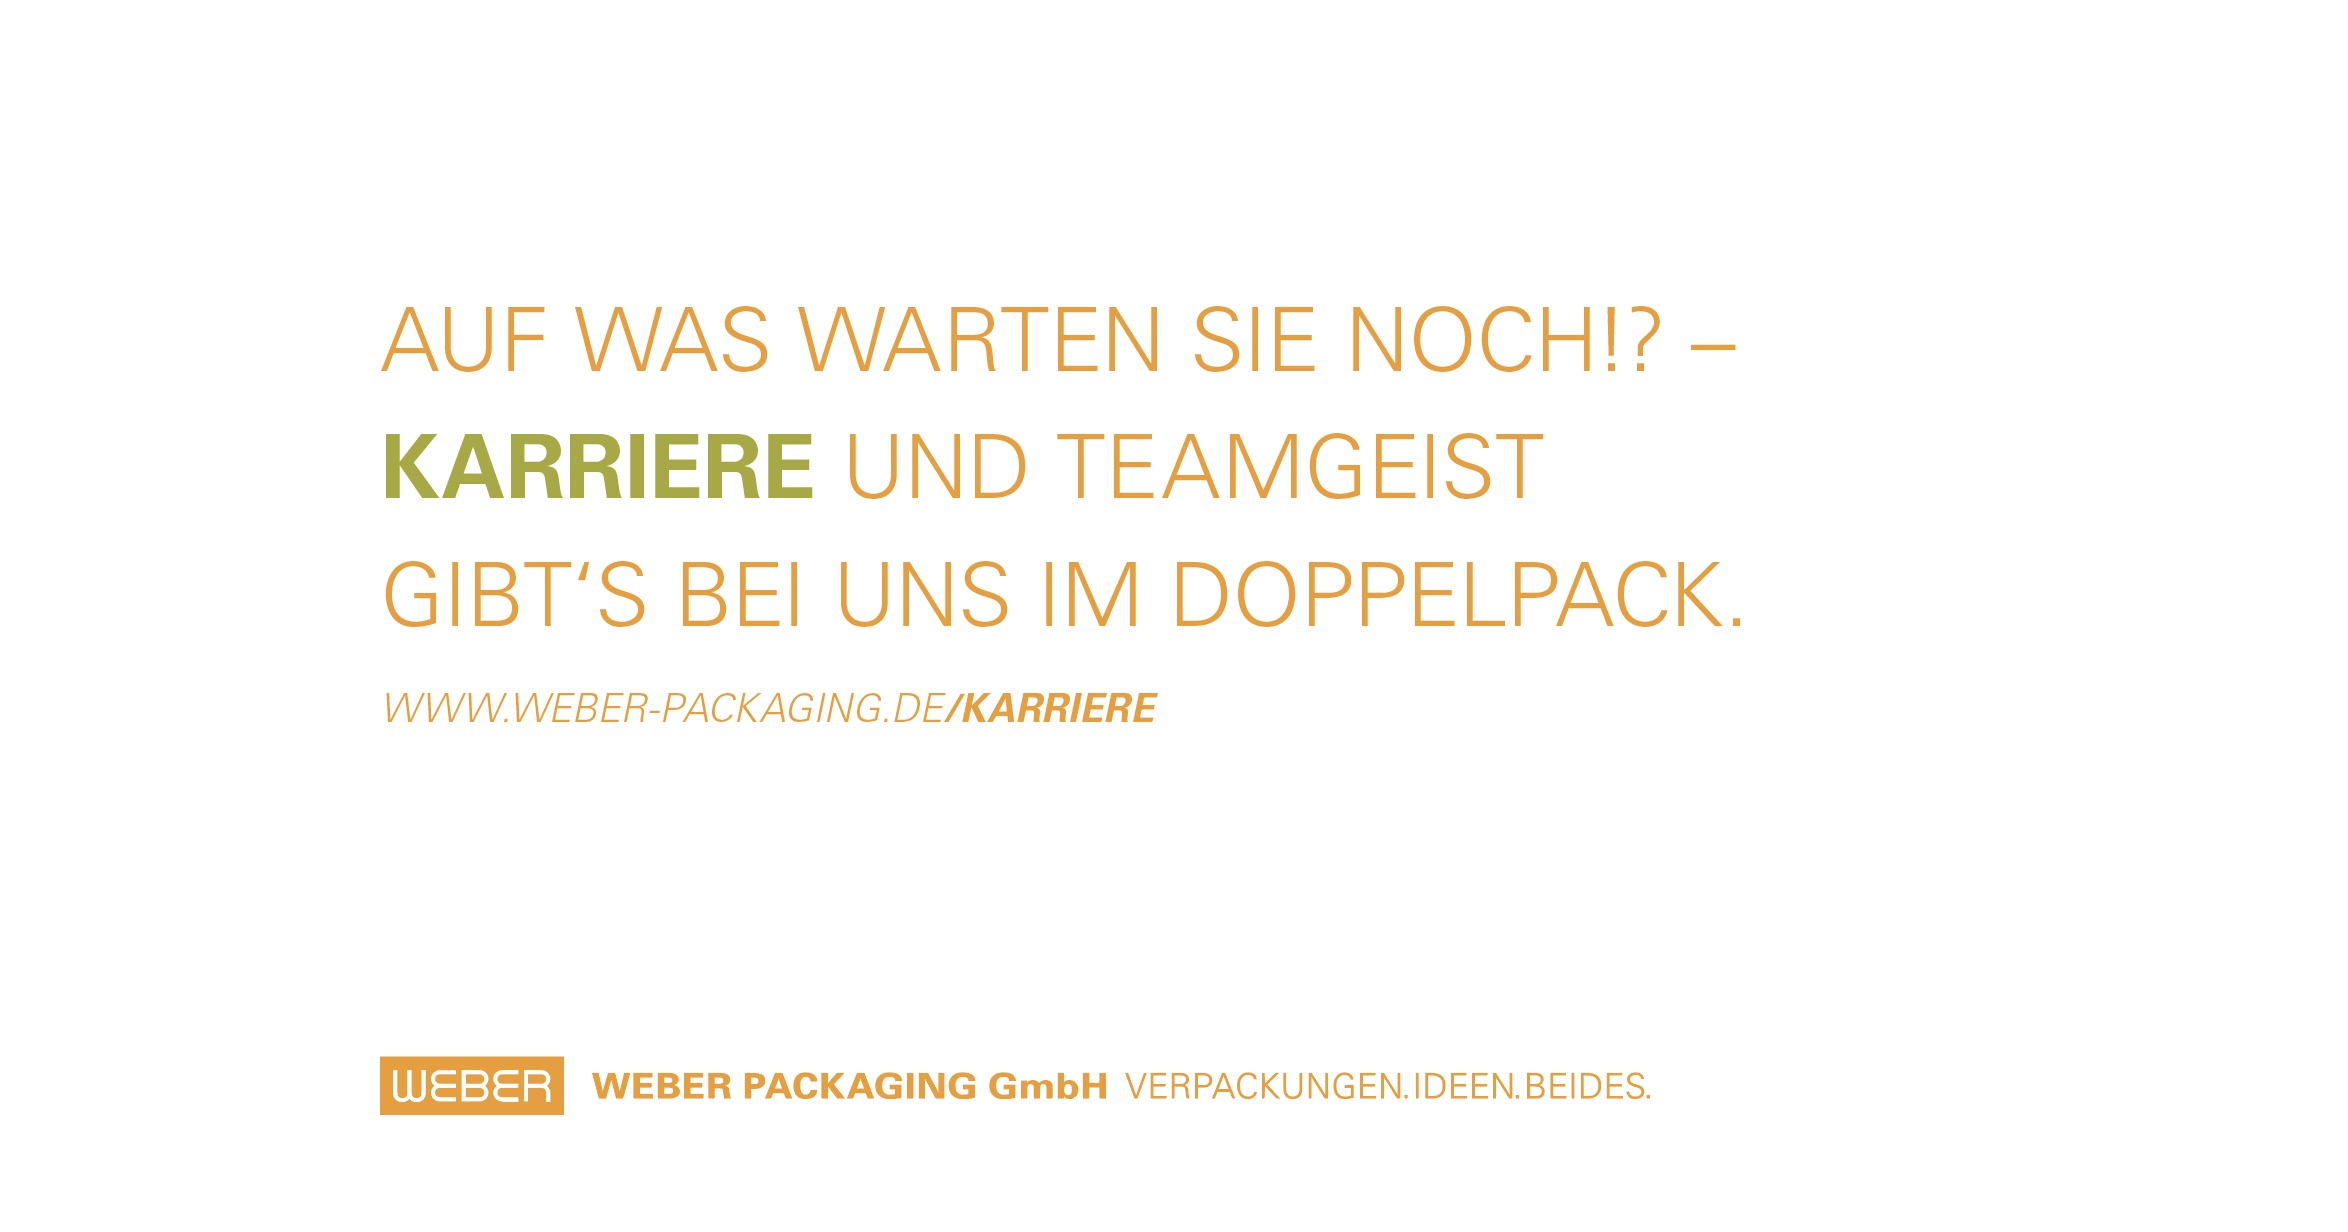 Grafik: © WEBER Packaging GmbH, 2019